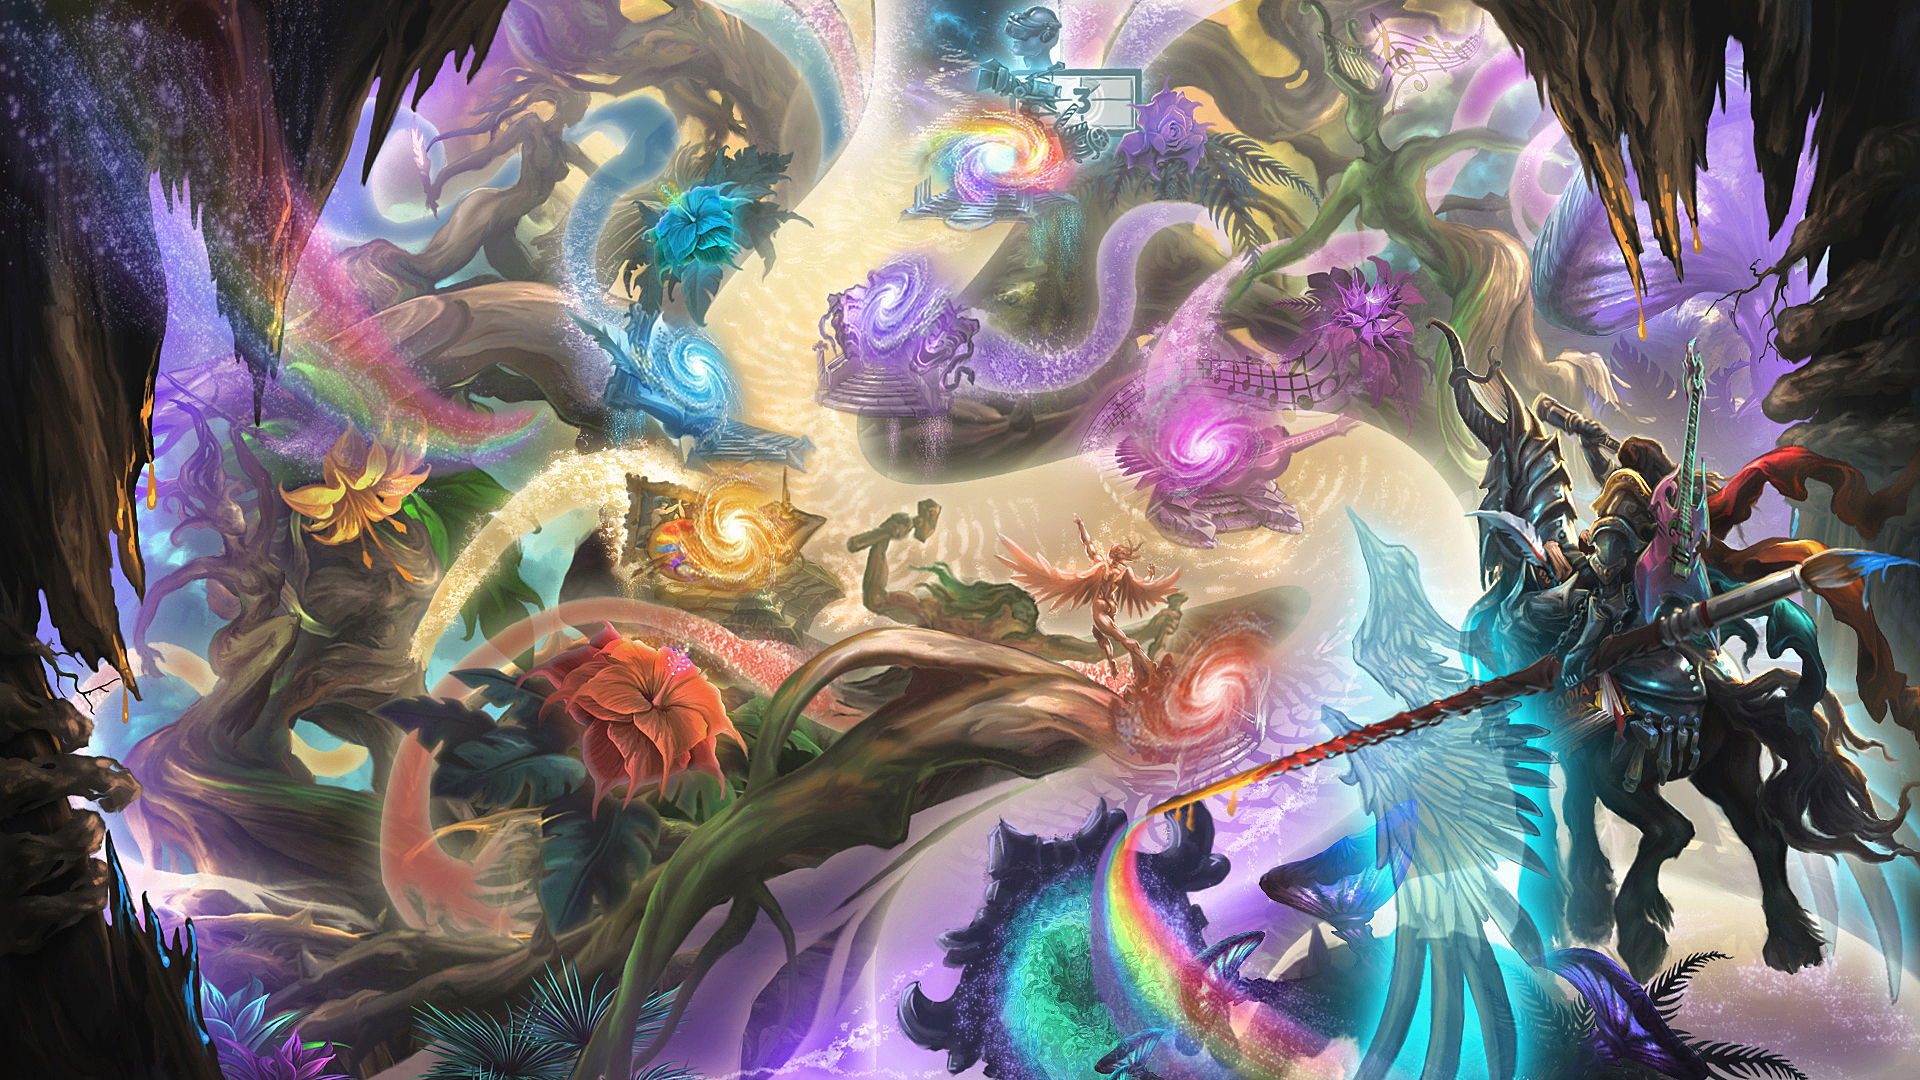 Fantasy - Artistic  Tree Rainbow Magic Knight Galaxy Flower Dreamworld Wallpaper